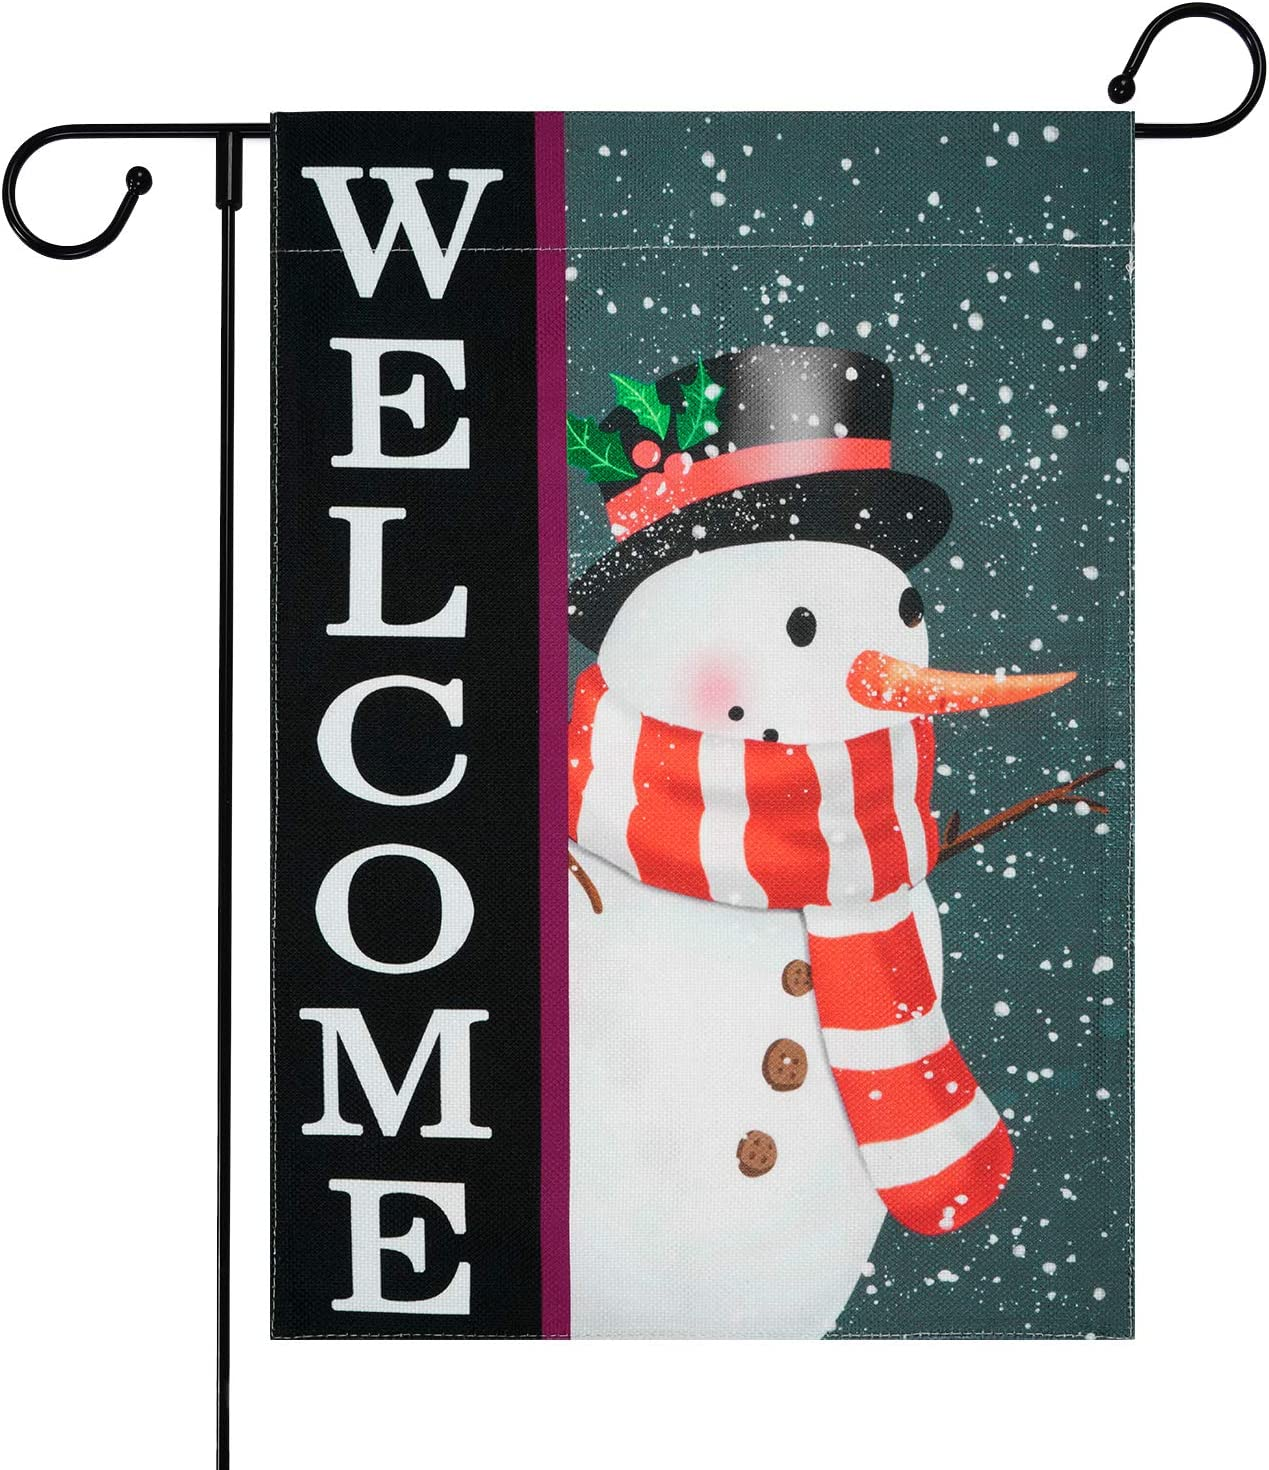 Ikfashoni Christmas Garden Flag for Outside, Double Sided Snowman Yard Flags, Winter Burlap Garden Yard Decorations with Welcome Quote, Seasonal Outdoor Flag, 12.5 x 18